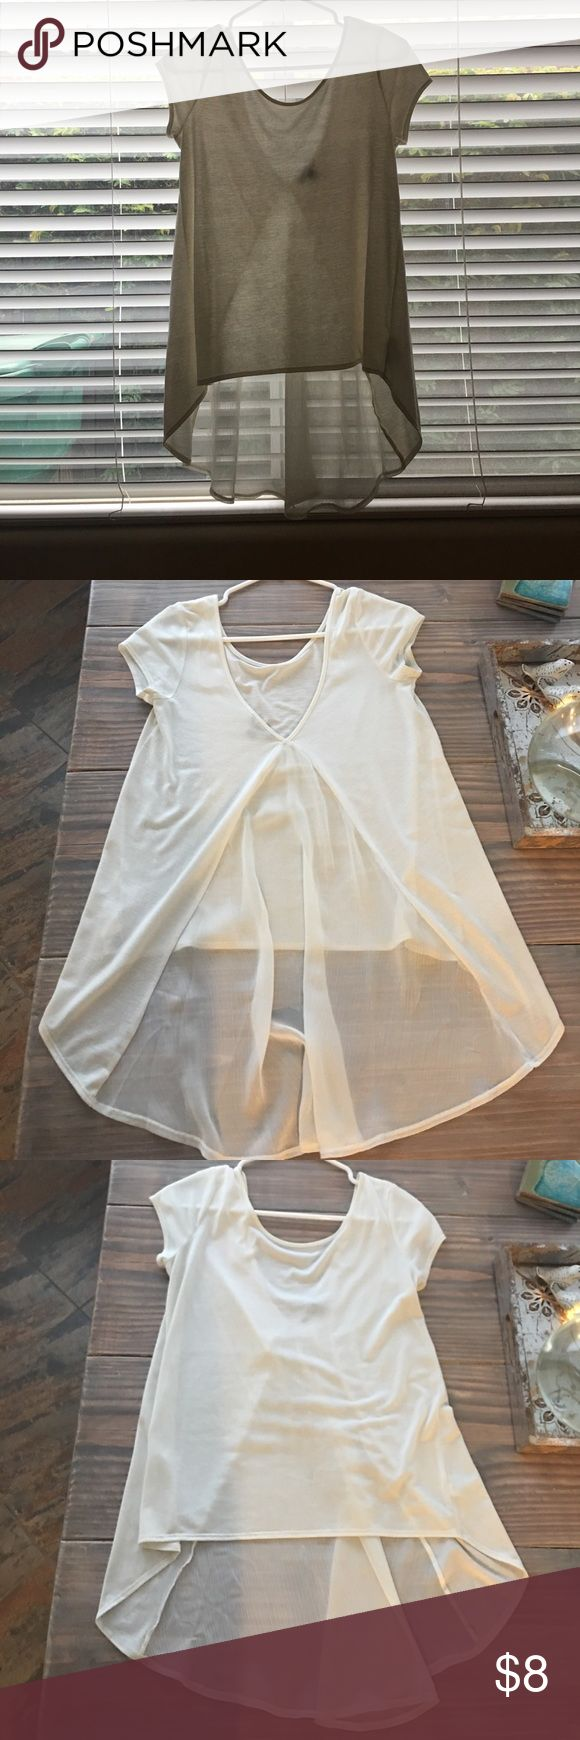 American Eagle Long sheet back top Cream top, cotton front and sheet back long panel in back. Great for leggings American Eagle Outfitters Tops Blouses